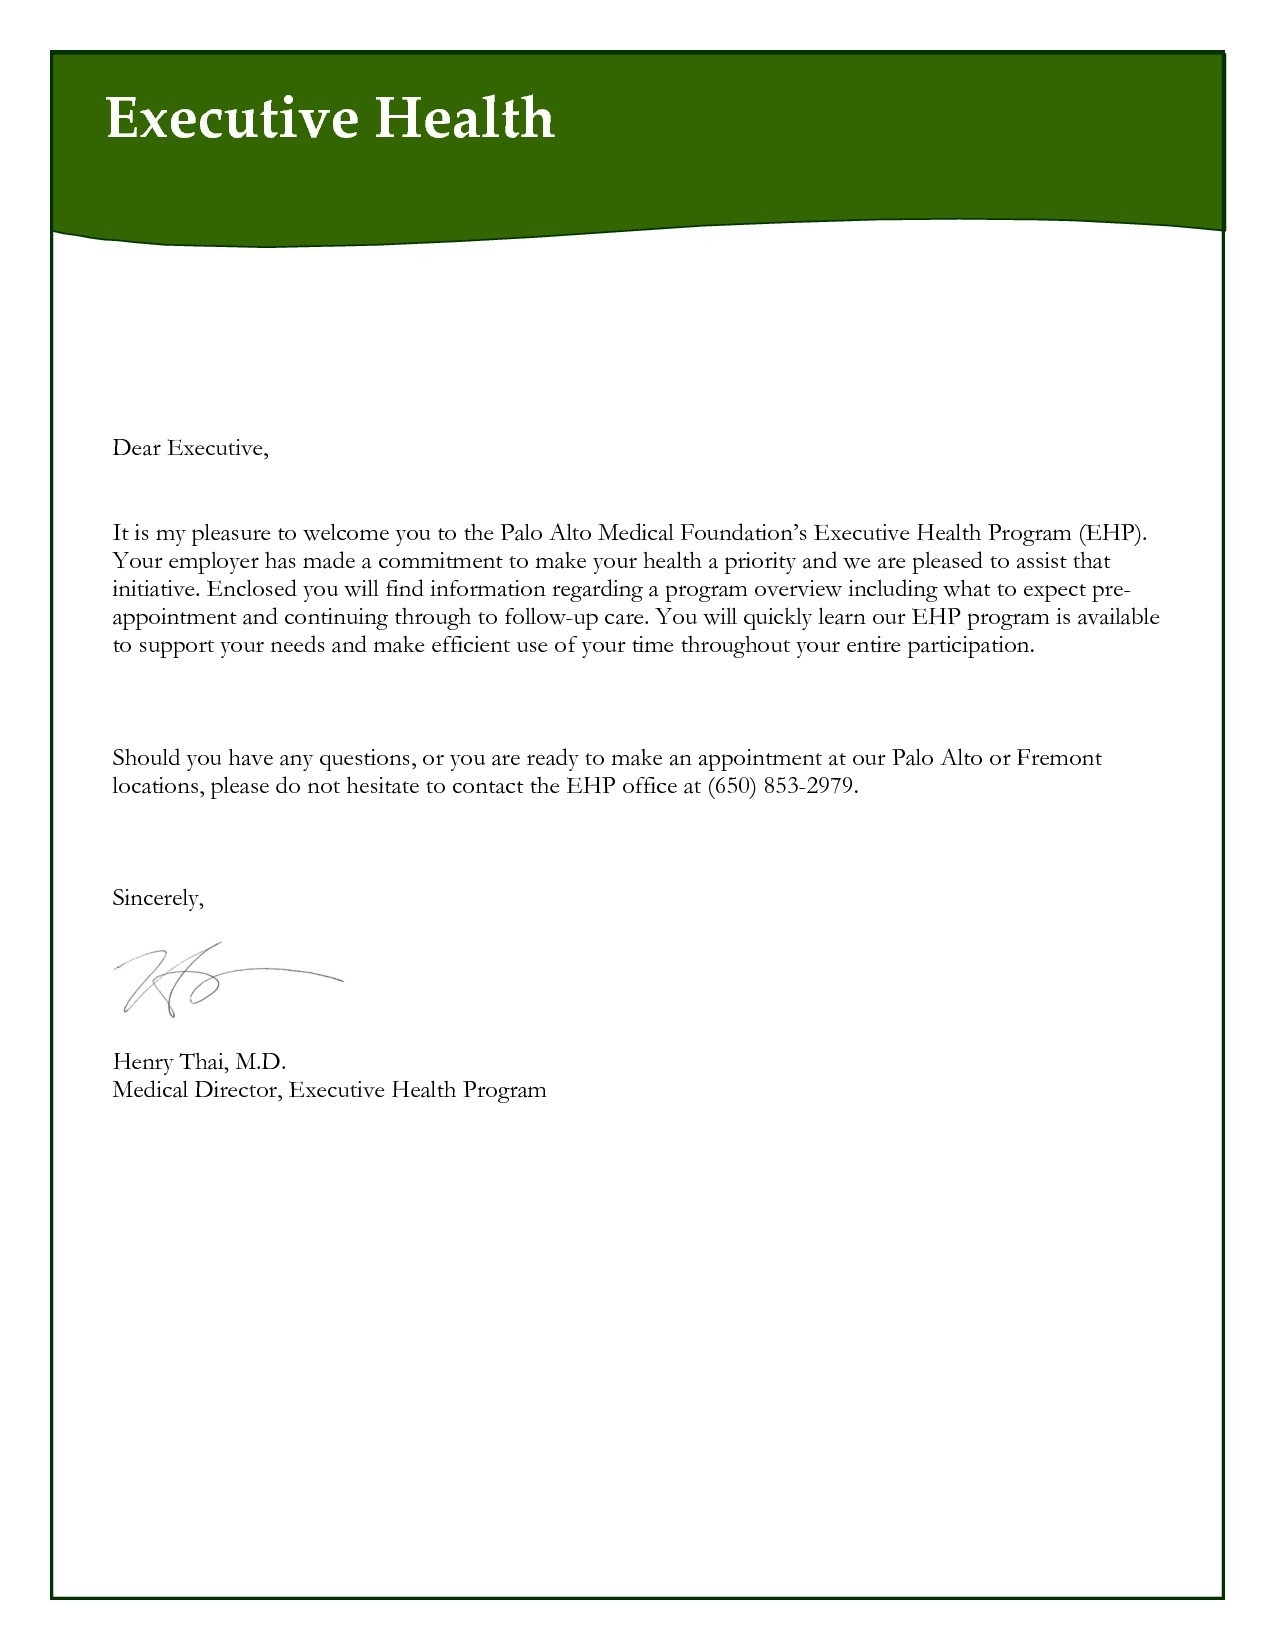 Appointment Reminder Letter Template Medical - Free Resume Templates Patient Missed Appointment Letter Template